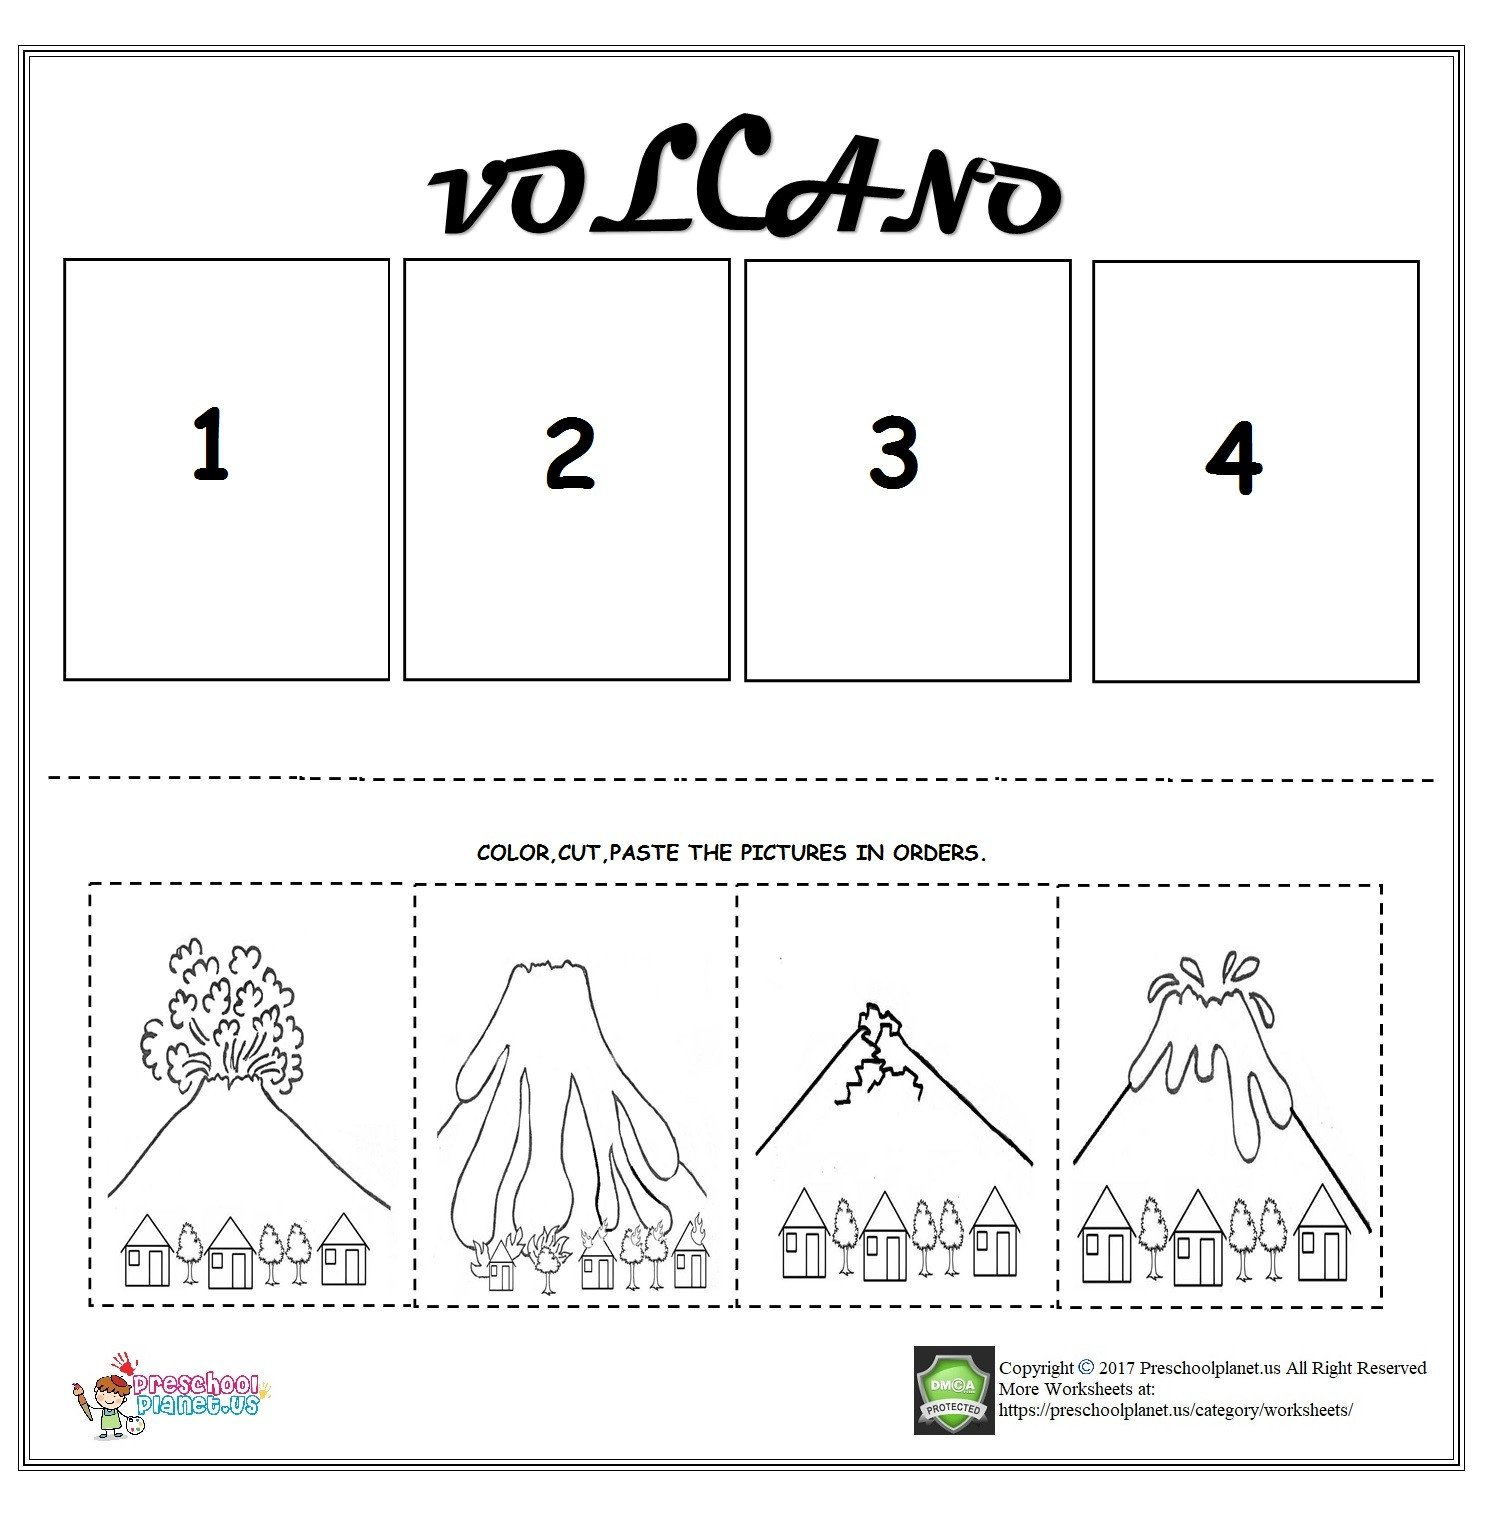 Preschool Sequencing Worksheets Volcano Sequencing Worksheet for Kids – Preschoolplanet